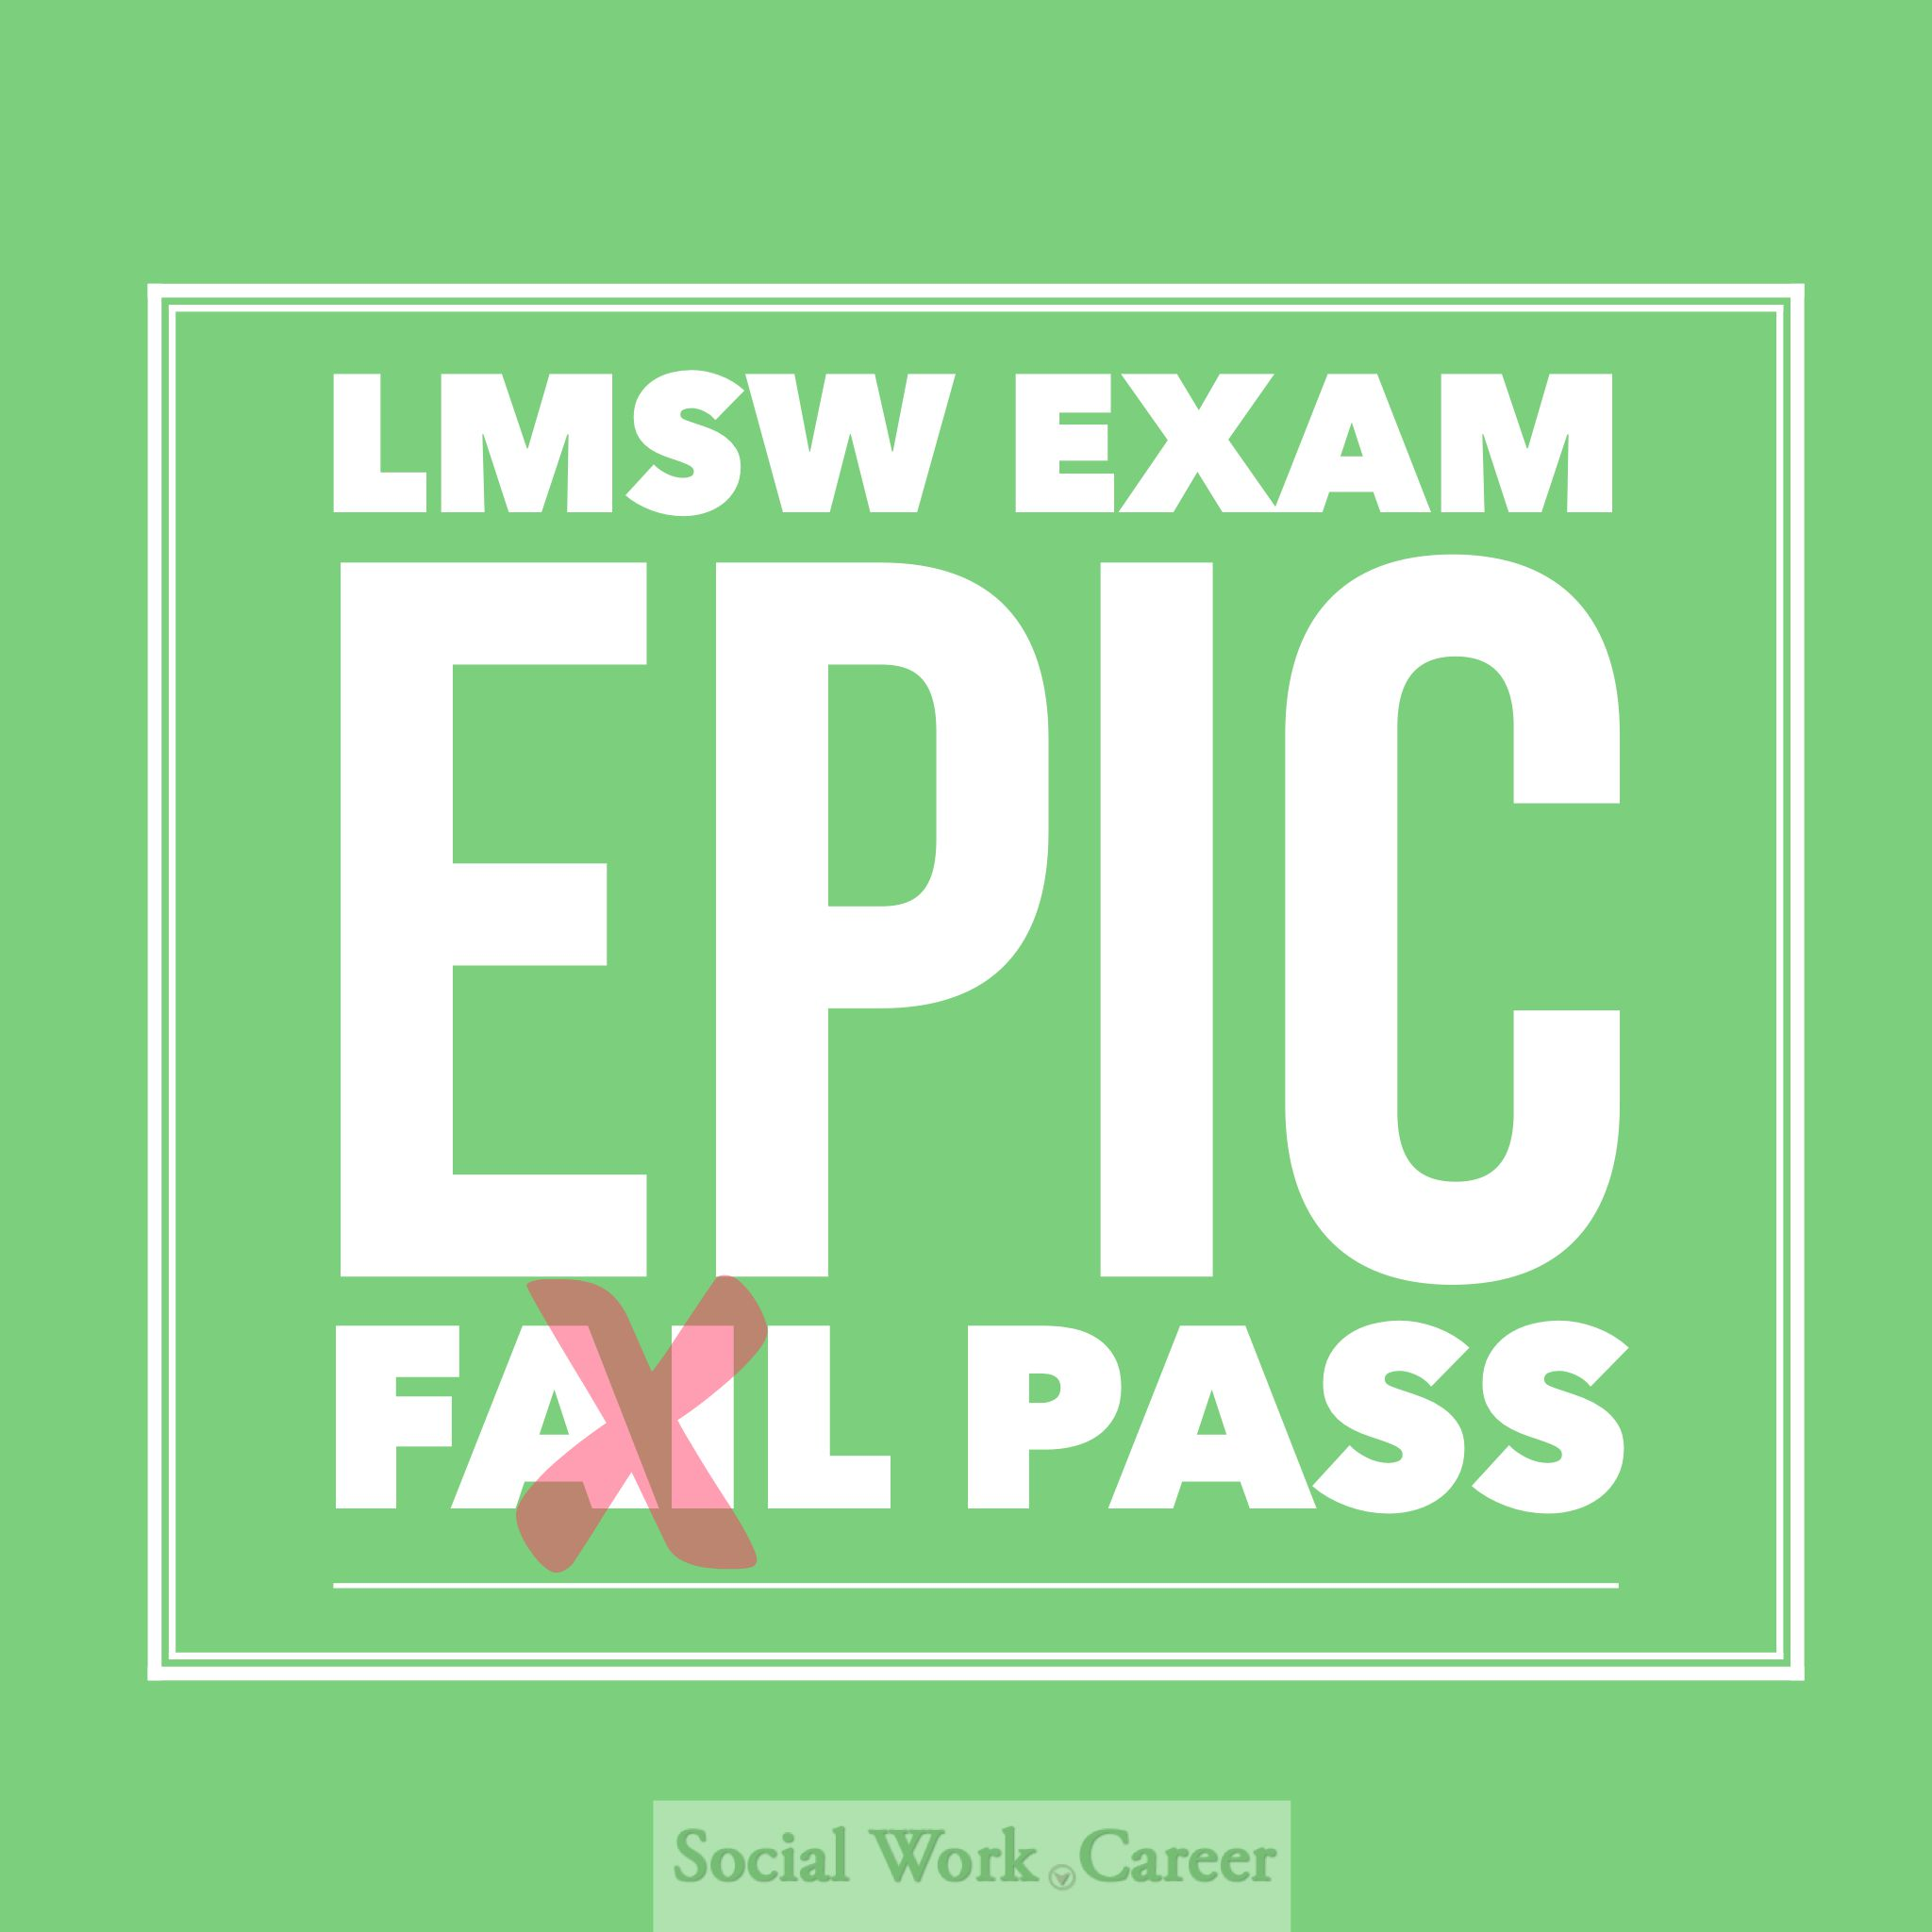 10 lmsw exam practice questions socialwork career secrets for passing the lmsw exam